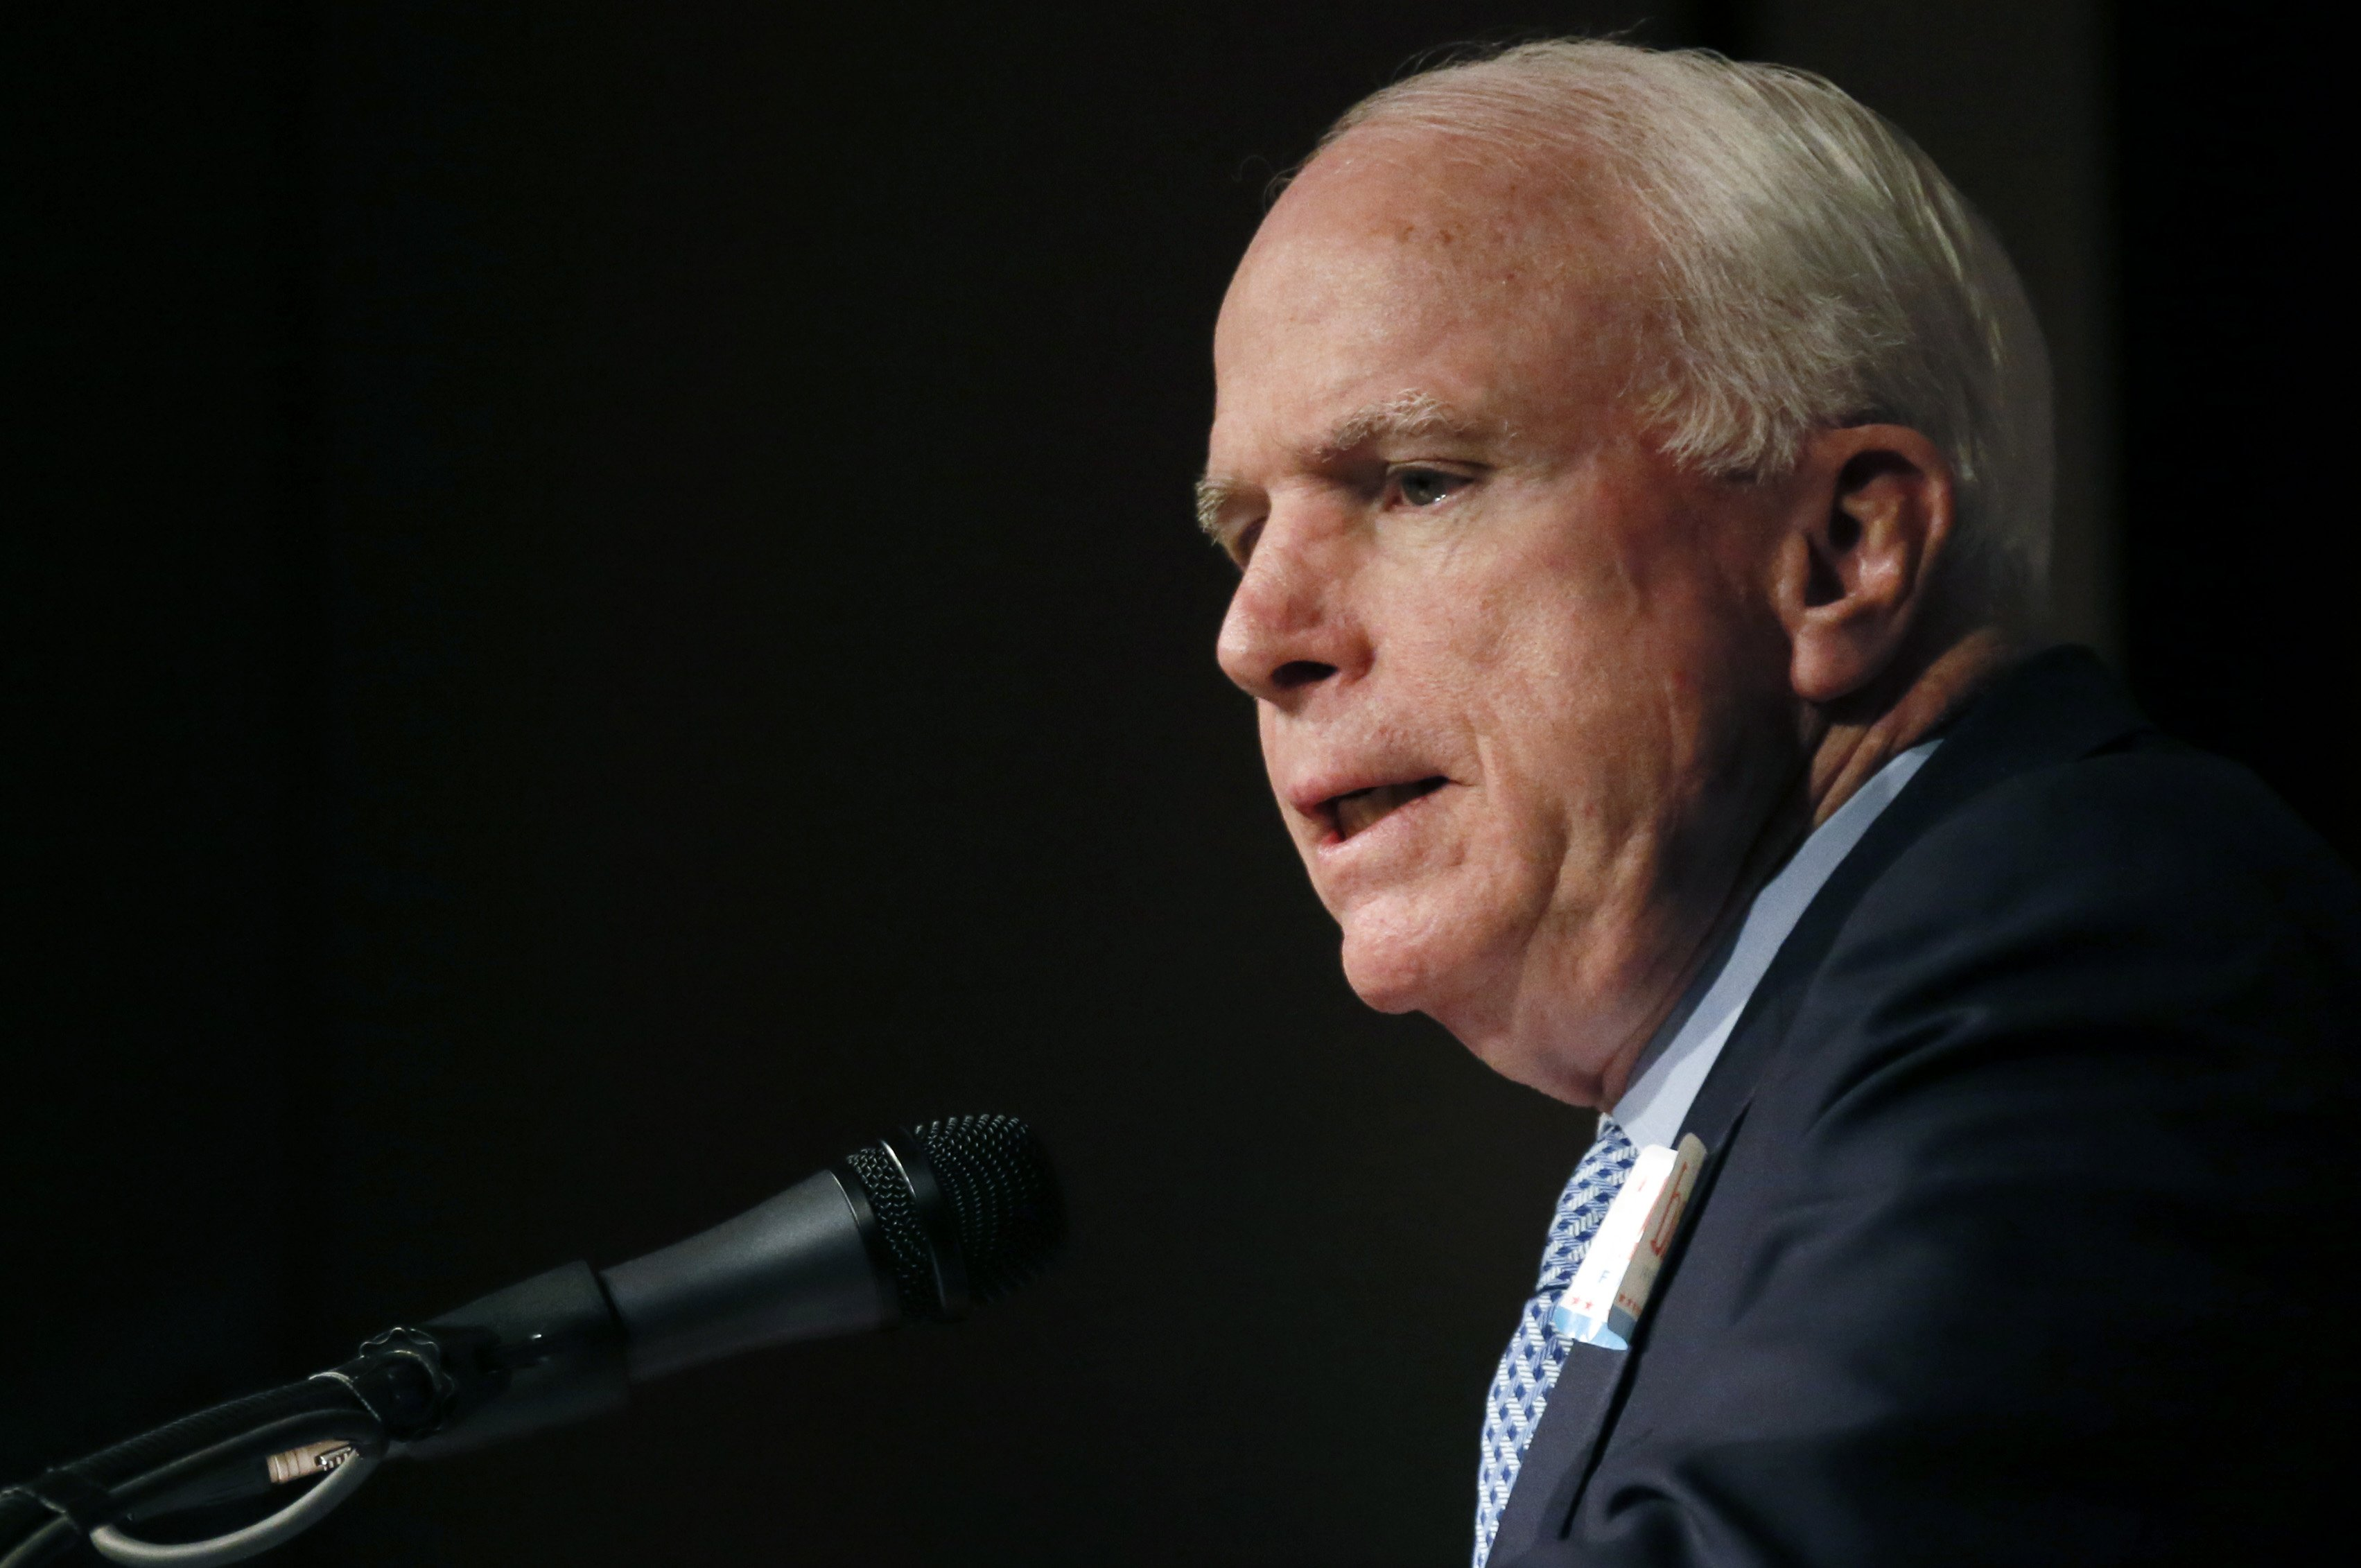 U.S. Sen. John McCain, R-Ariz., criticizes the Obama administration during a Jackson, Miss., runoff rally in support of Republican U.S. Sen. Thad Cochran at the Mississippi War Memorial in Jackson, Miss., June 23, 2014.